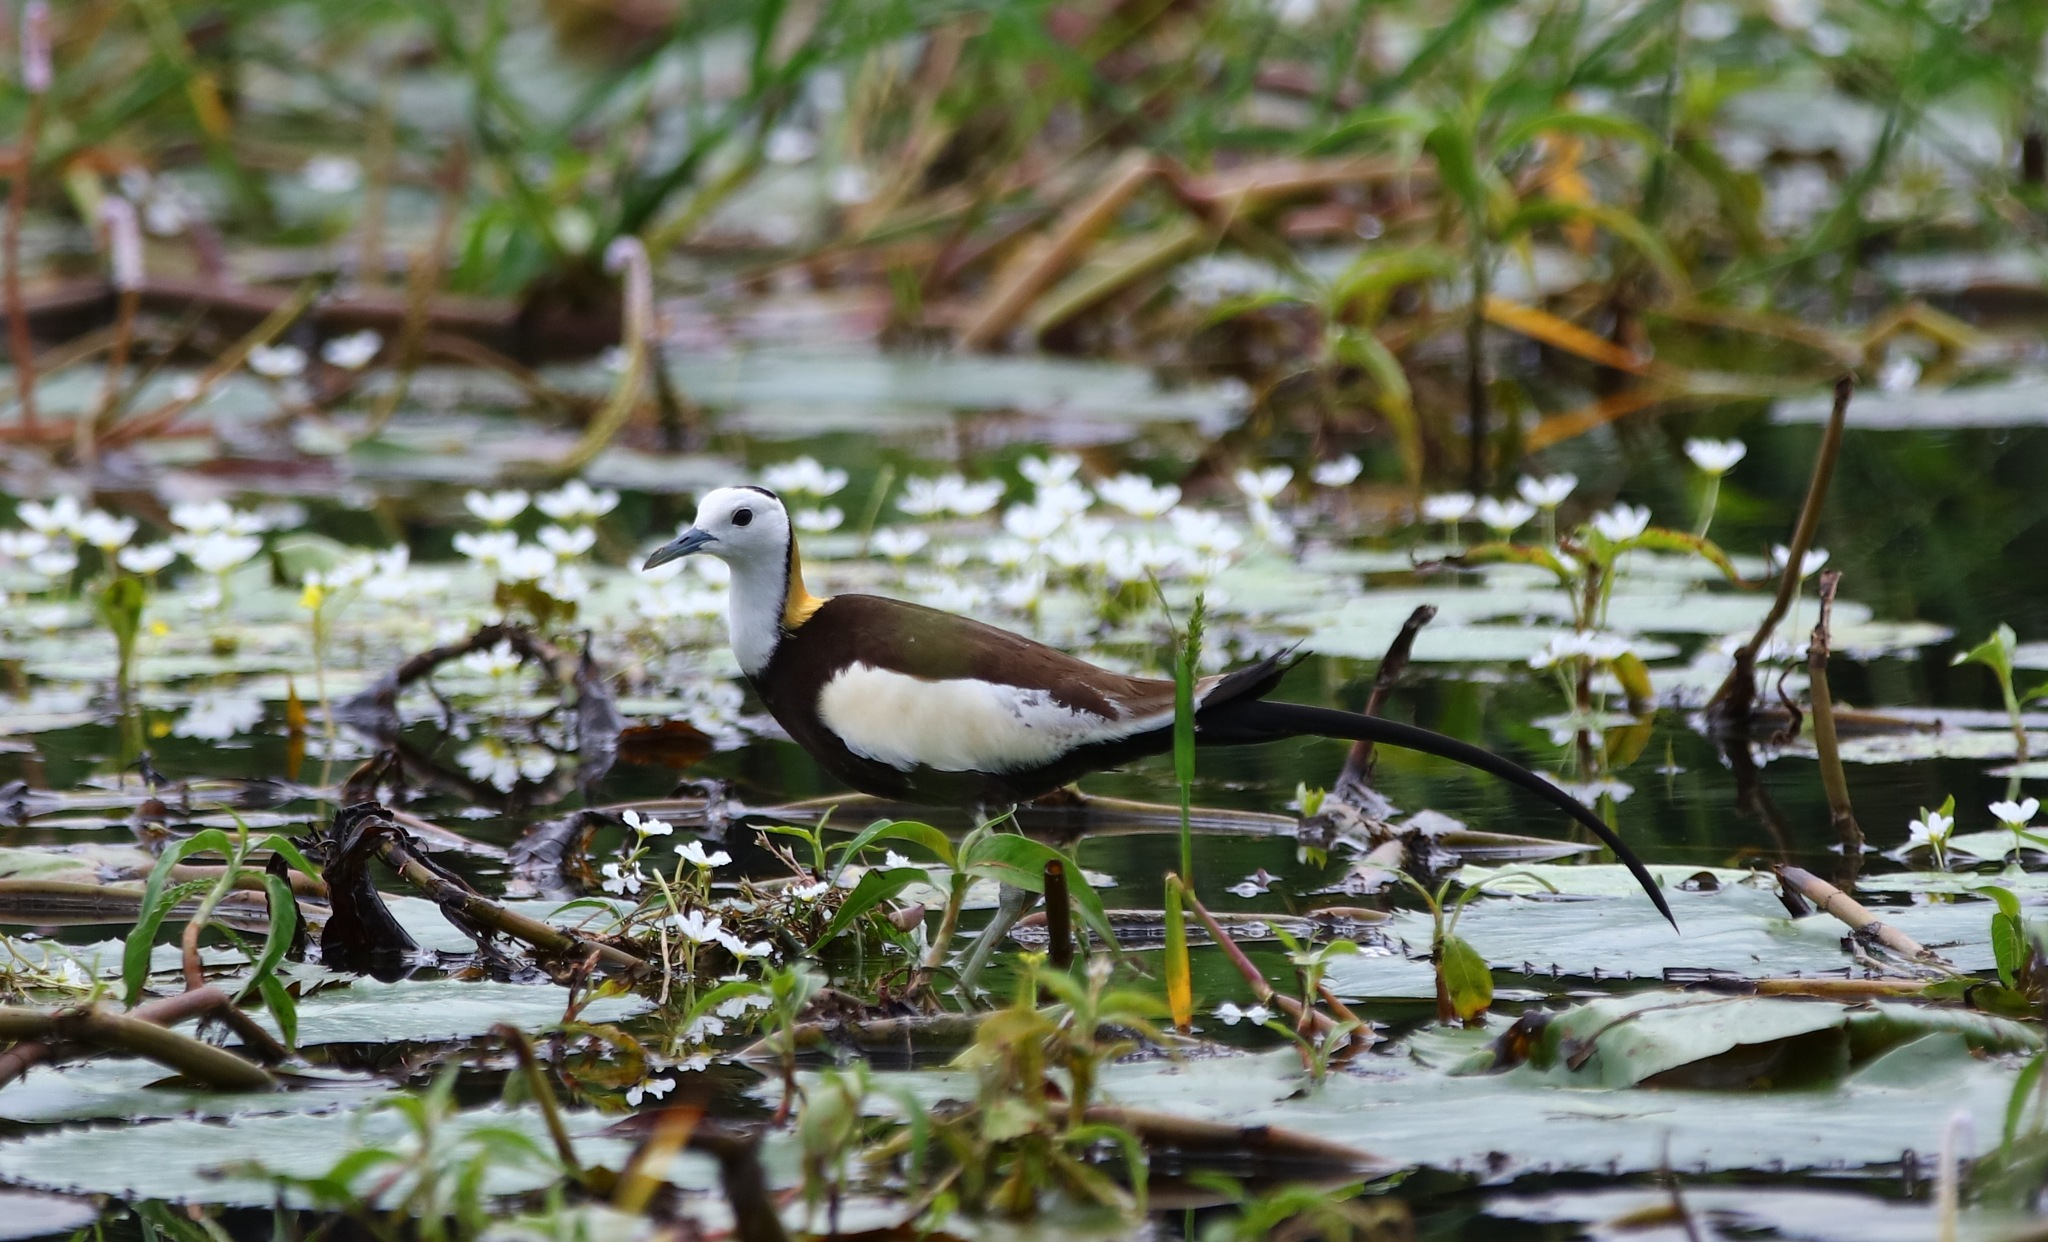 Pheasent-Tailed Jacana by pstroyer